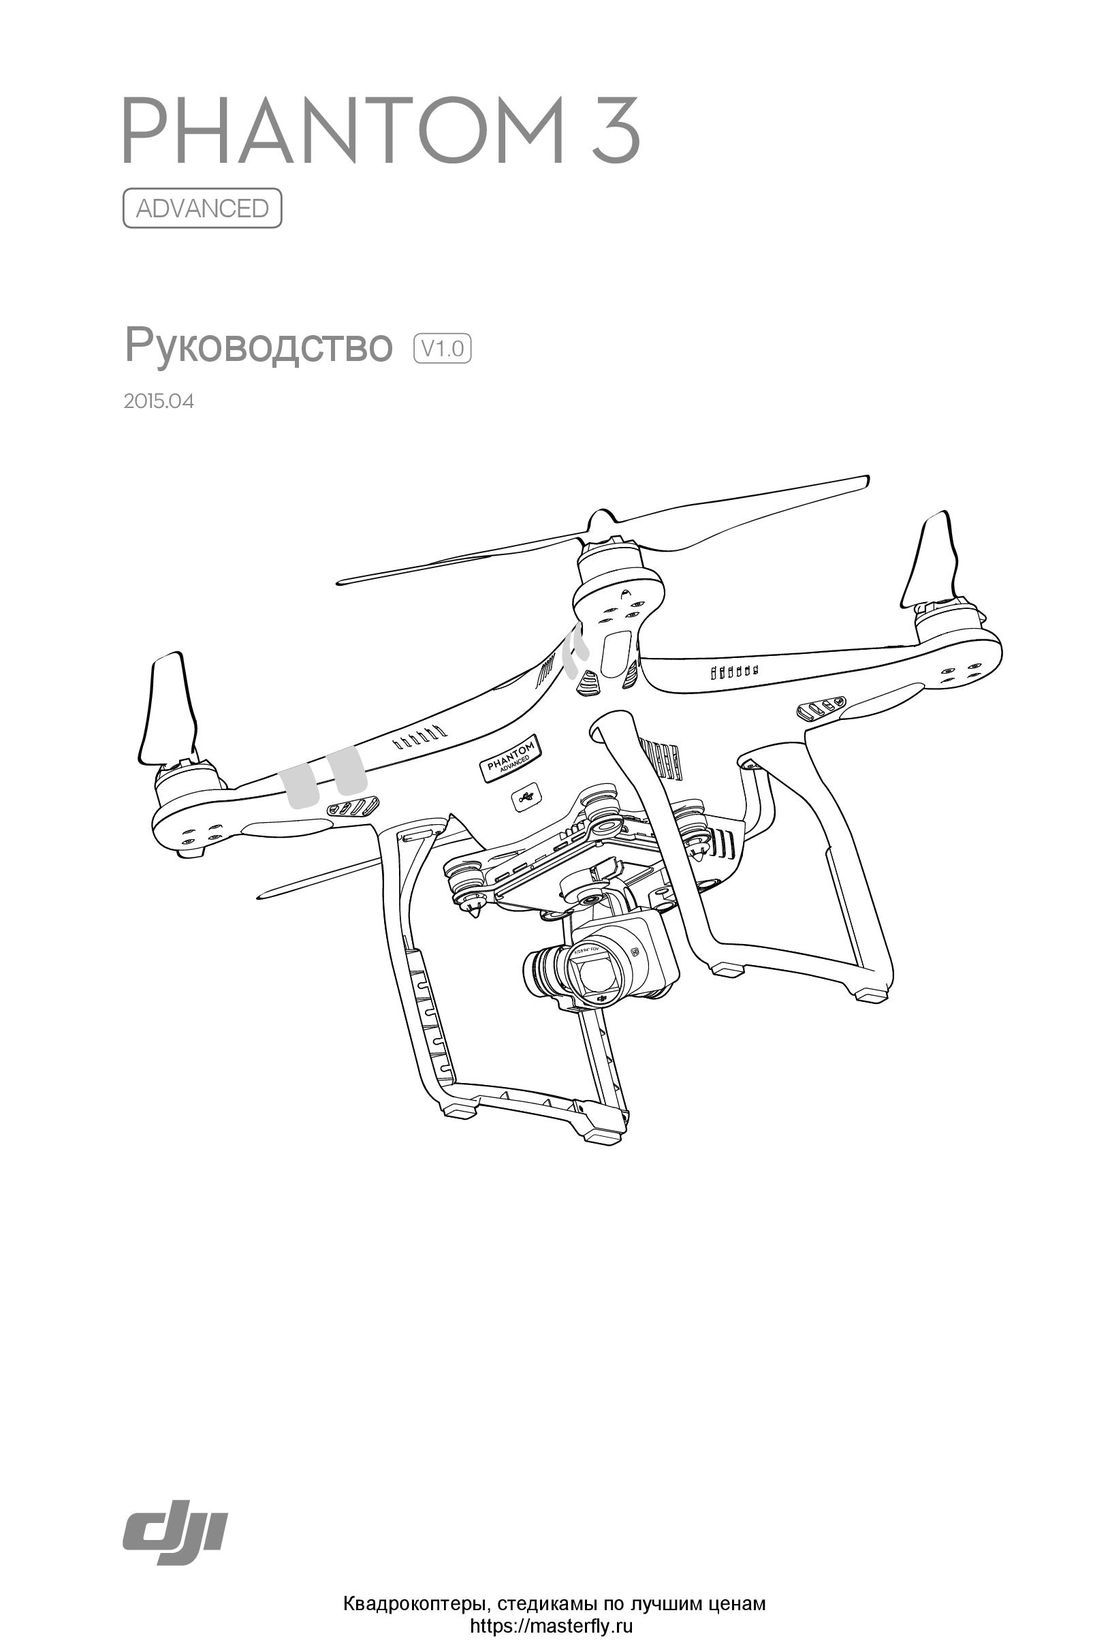 DJI Phantom 3 Advanced инструкция на русском